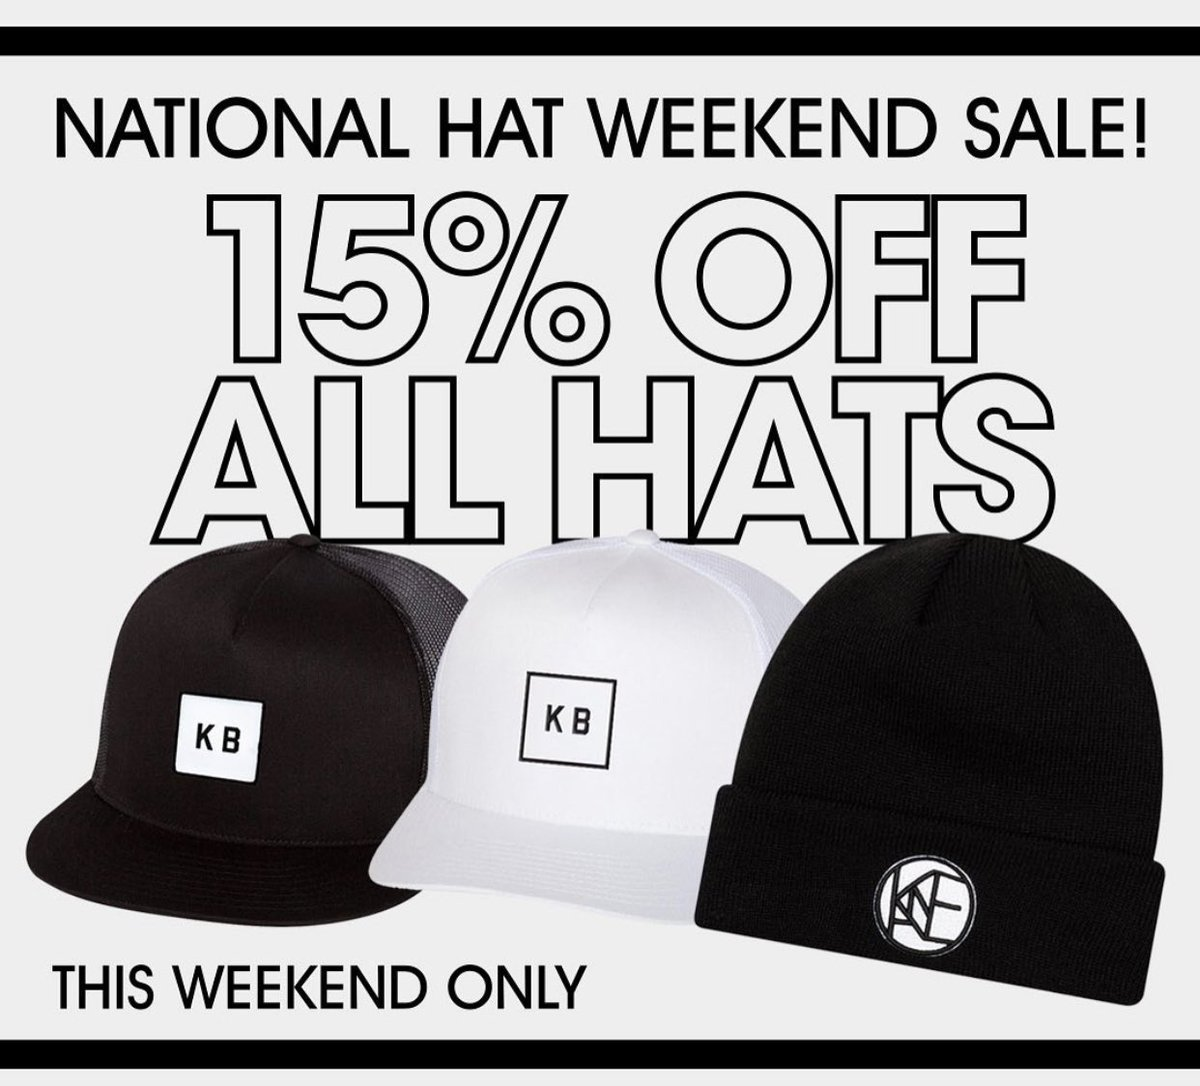 Who needs to grab a hat this weekend?! 👀 #NationalHatDay #nationalhatweekend #sale @kanebrown @KaneBrownFamily #KBFamily